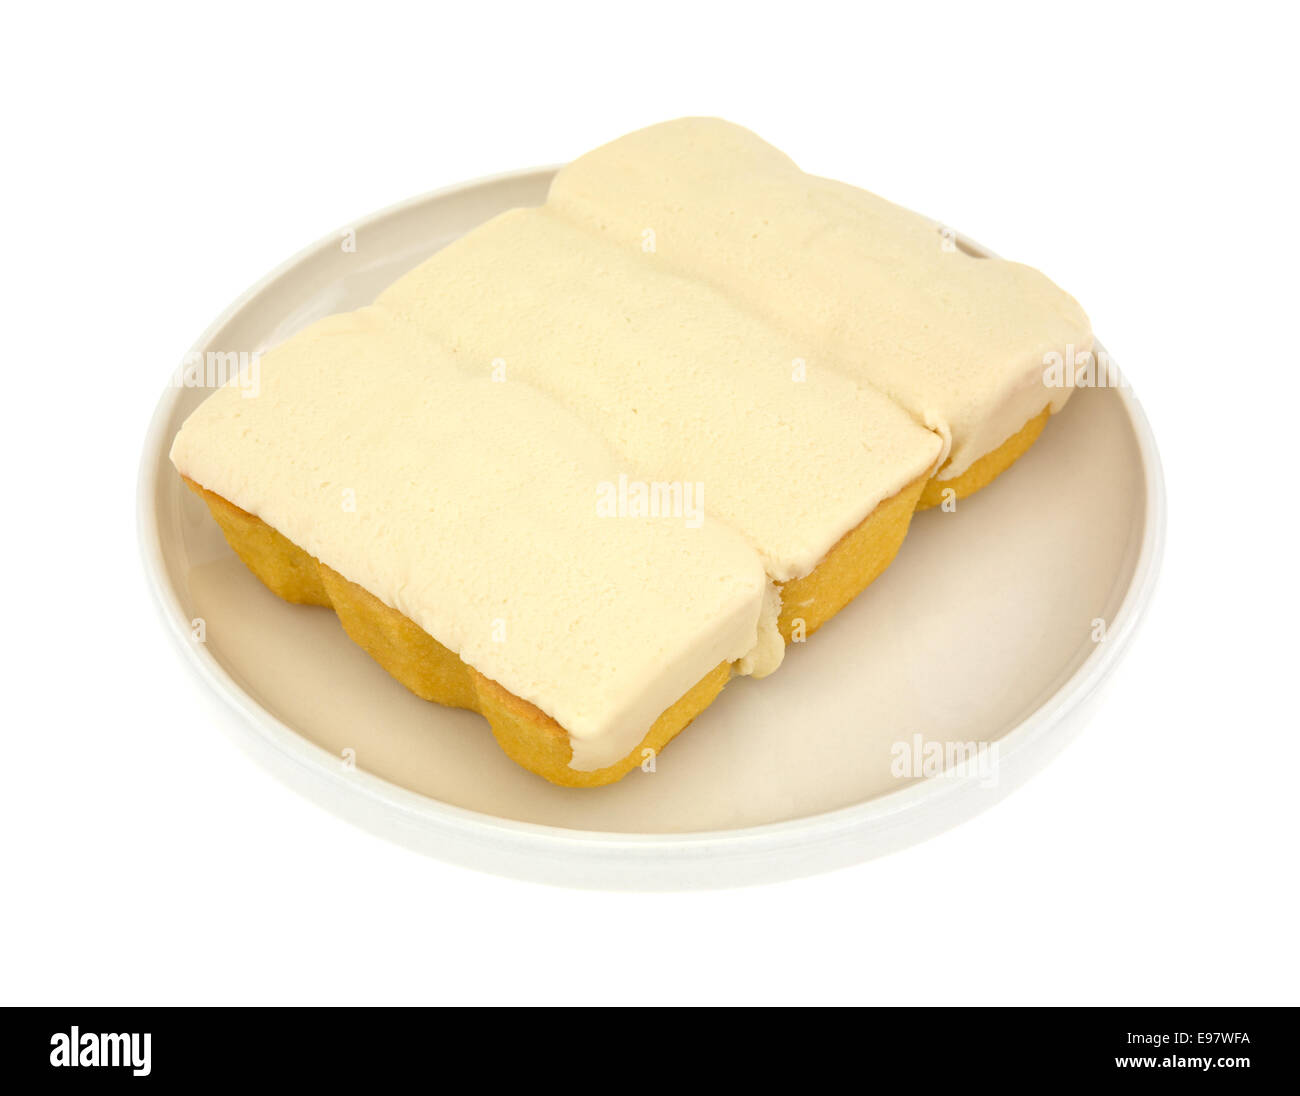 Three small fluffy bite sized snack cakes filled with cream frosting on a plate atop a white background. - Stock Image